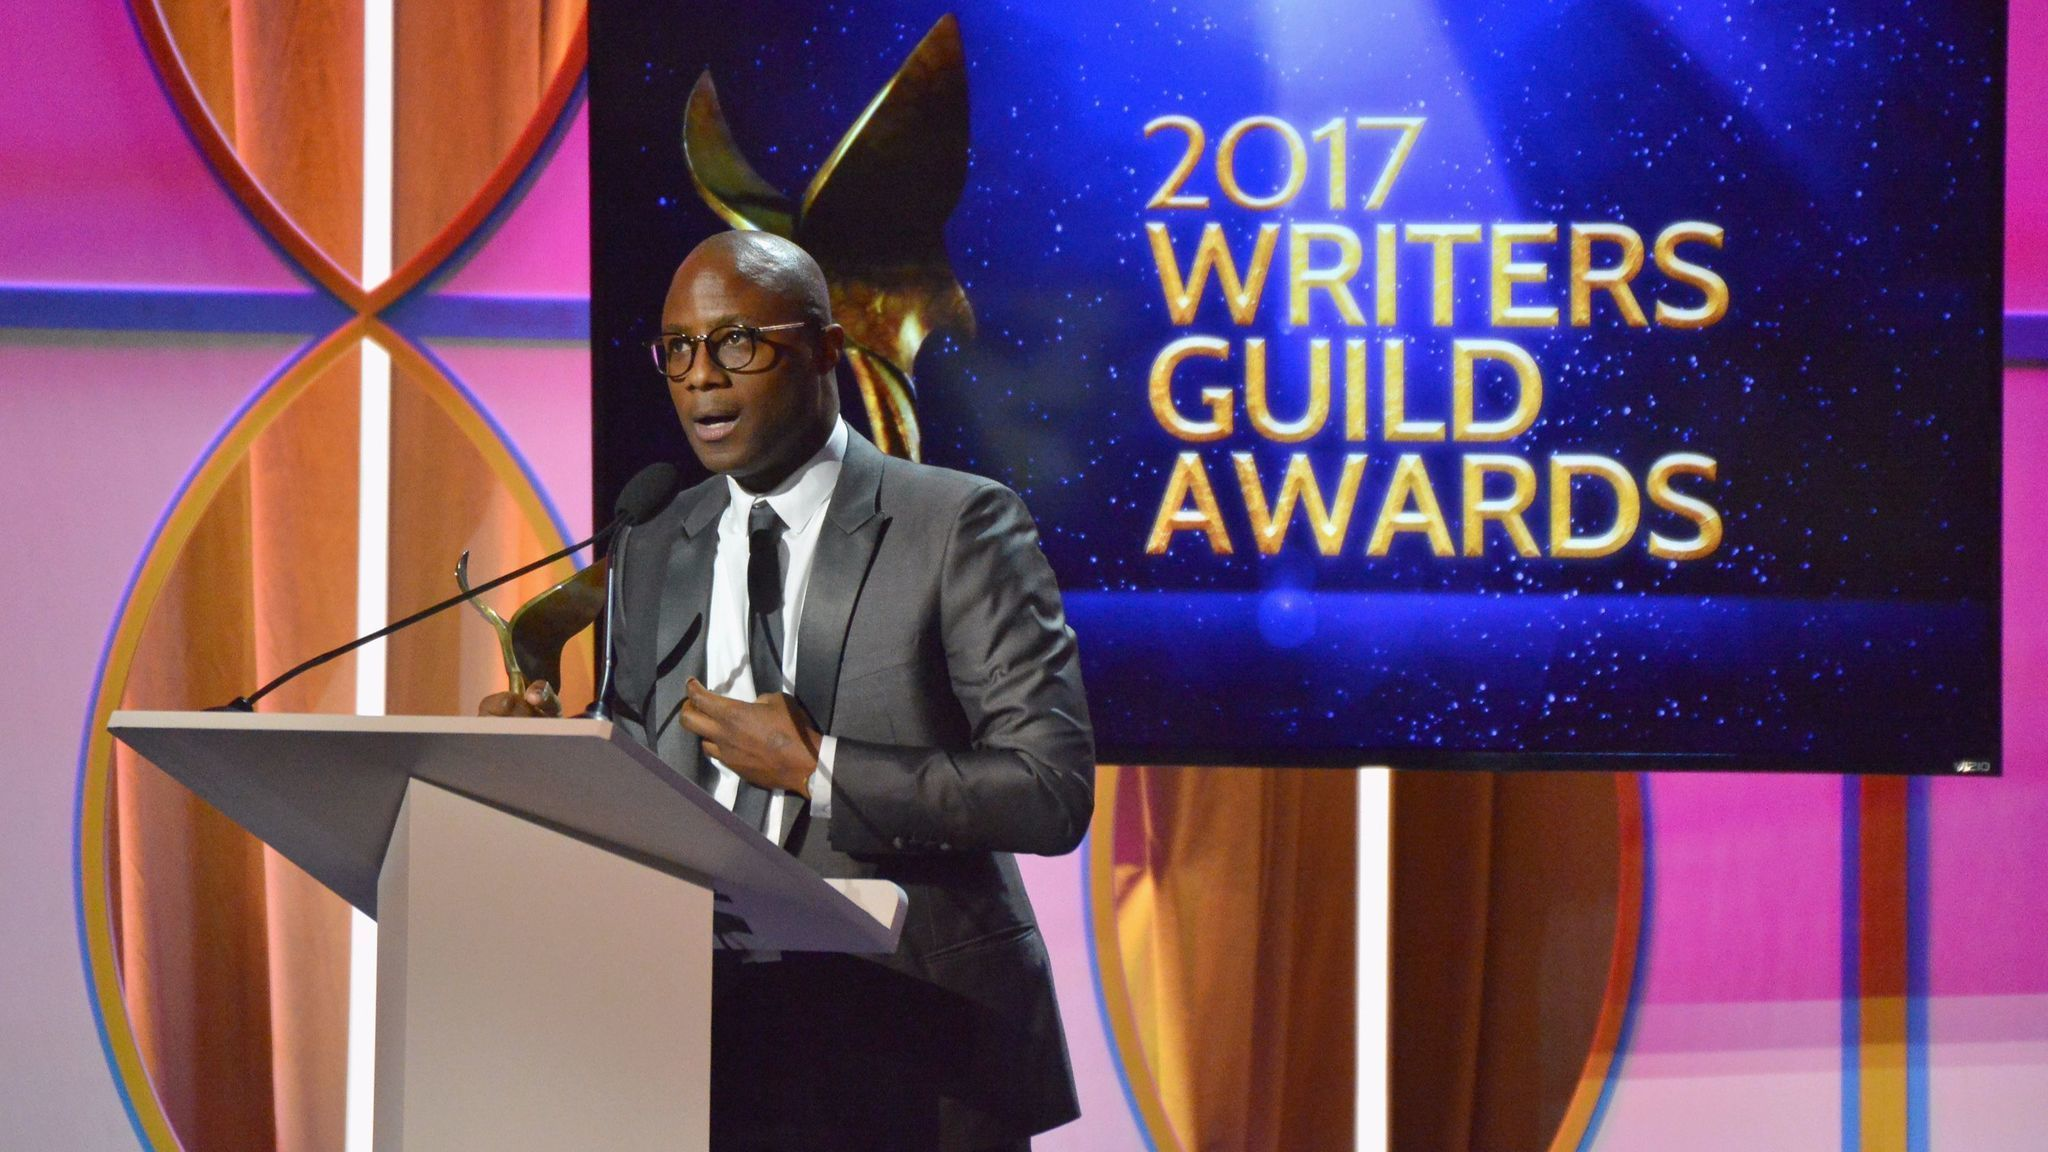 'Moonlight' and 'Arrival' take top honors at the Writers Guild Awards, where political barbs abound